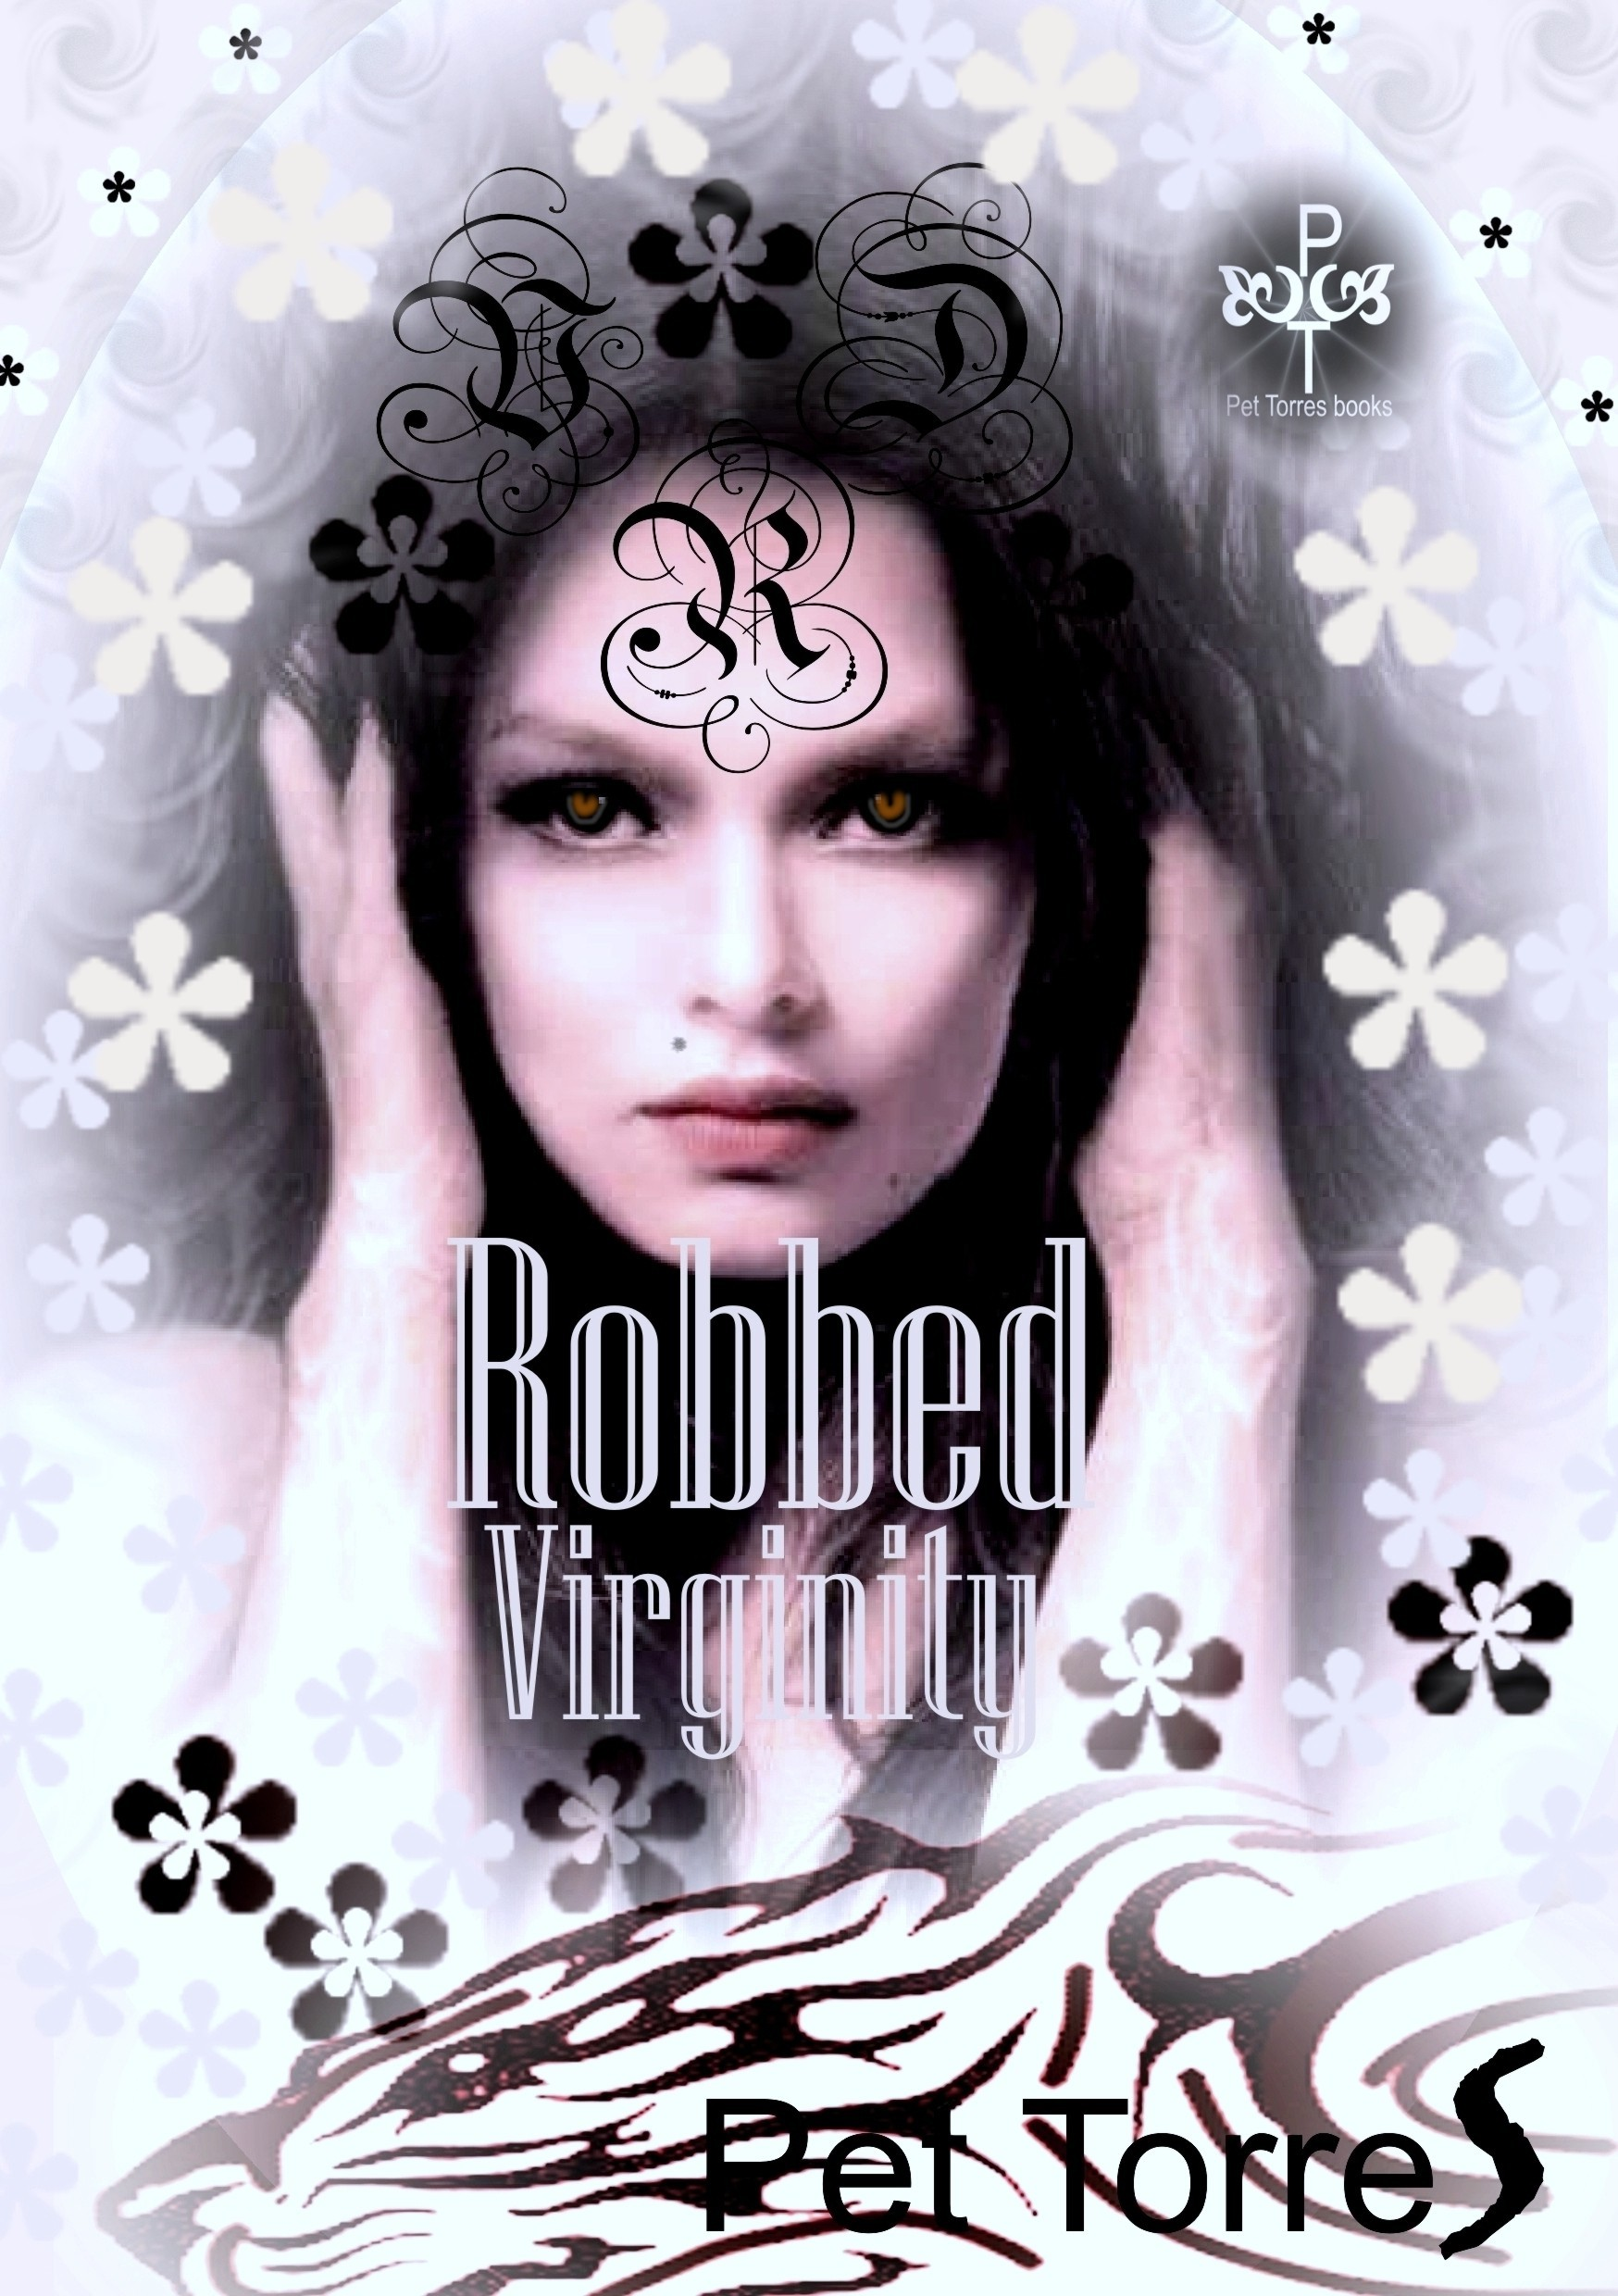 Robbed virginity (tiger's obsession book 2)